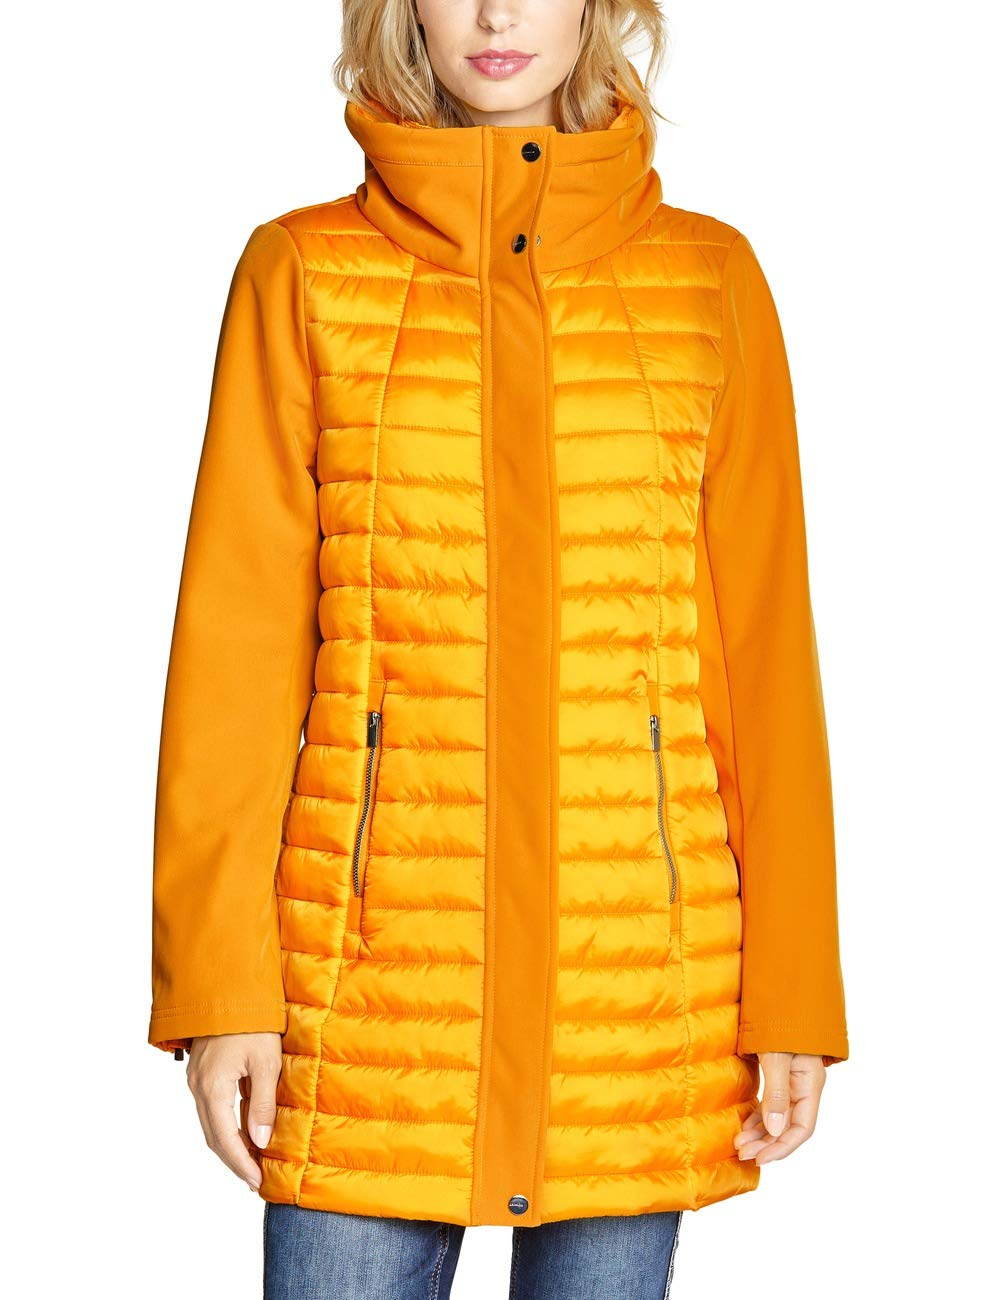 Clementine BlousonJaunesweet 1178848taille One Fabricant46Femme 201376 Street bf6Yy7g